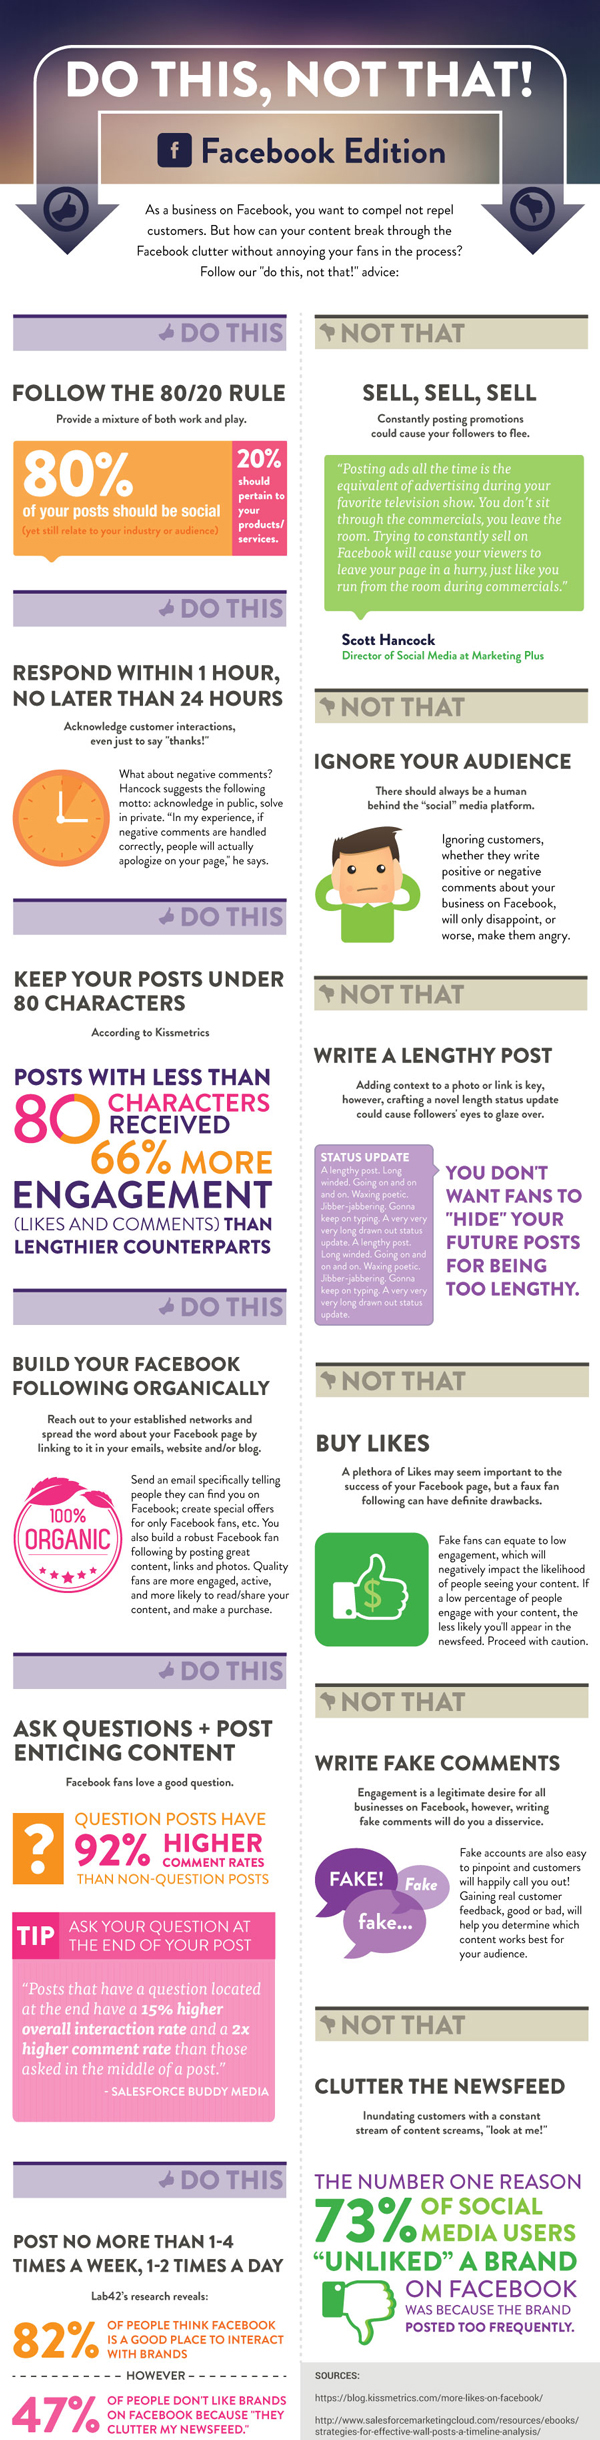 do-this-not-that-facebook-edition-infographic.jpg